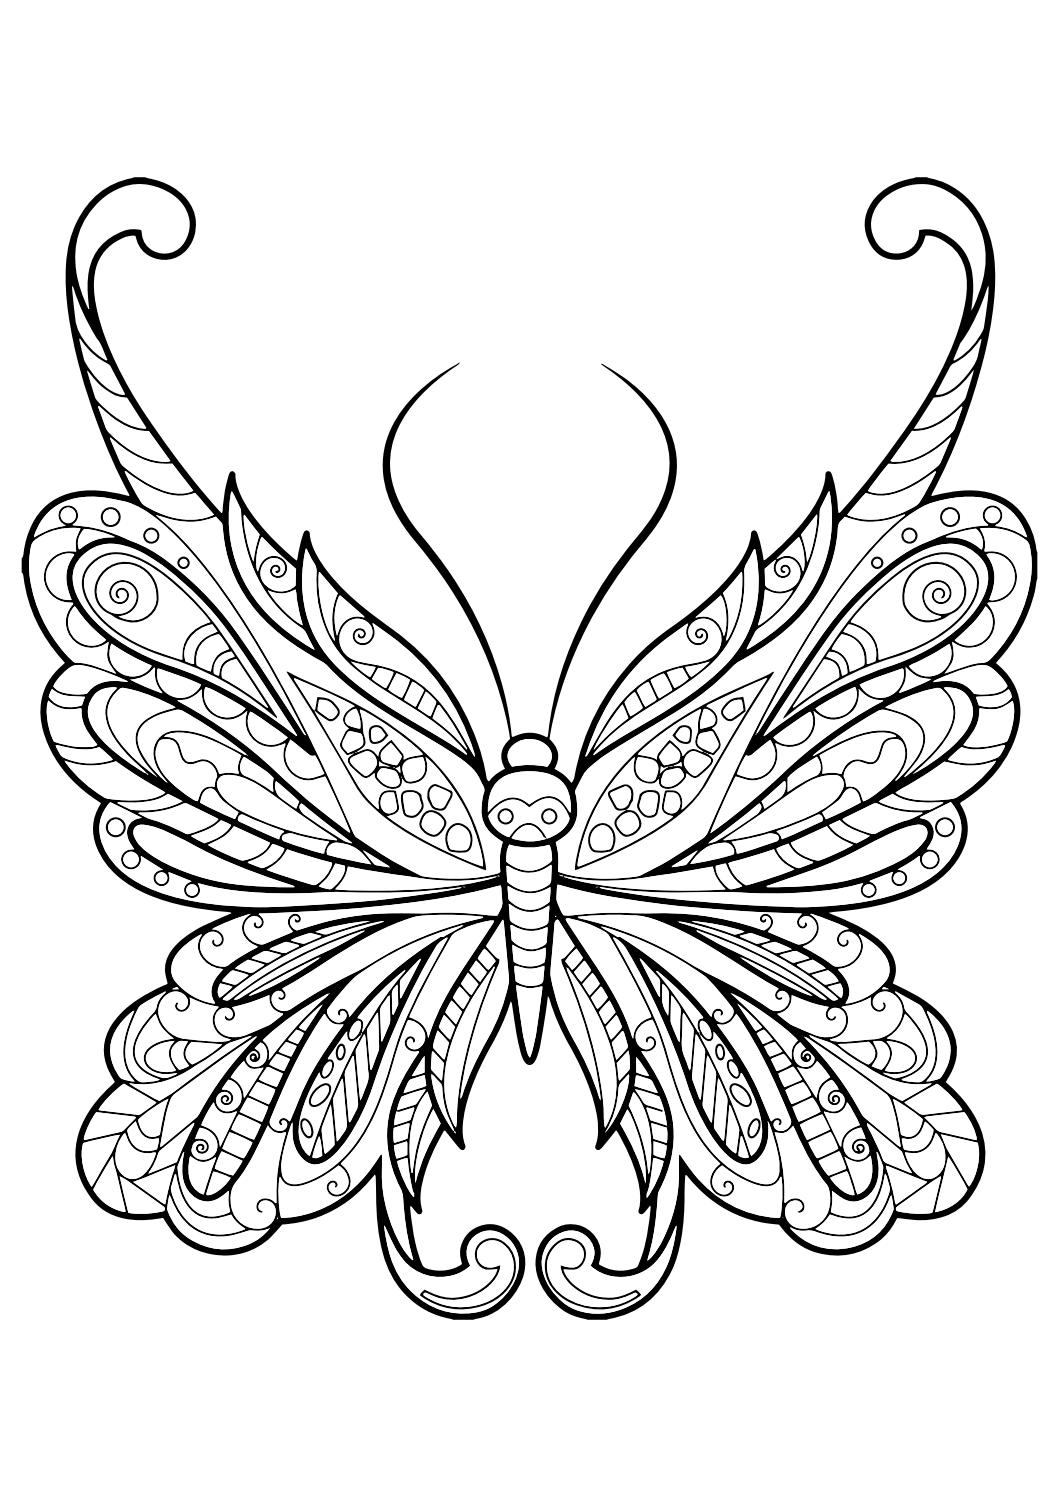 New Life Butterfly Coloring Page Trolls Movie Coloring Pages Best